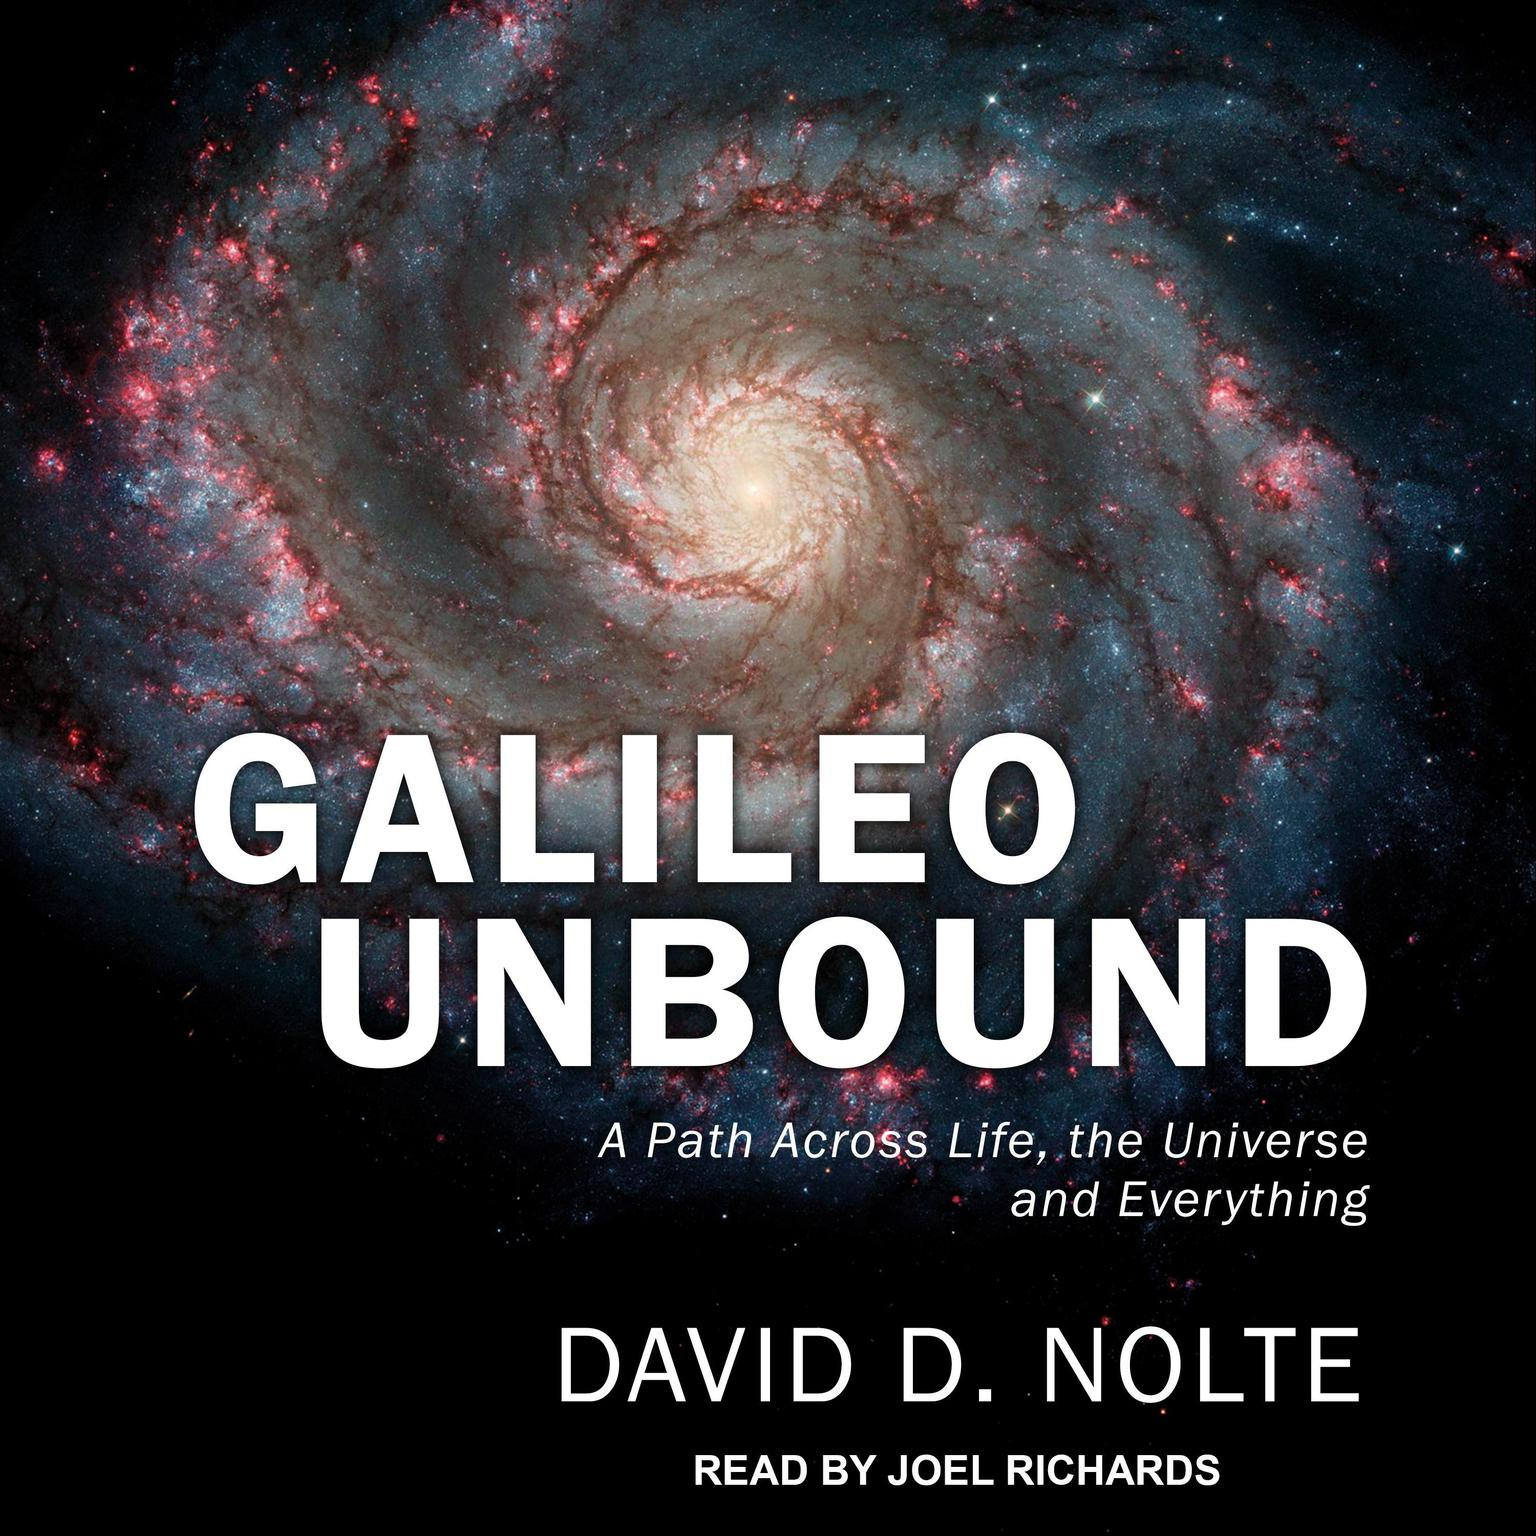 Galileo Unbound: A Path Across Life, the Universe and Everything Audiobook, by David D. Nolte